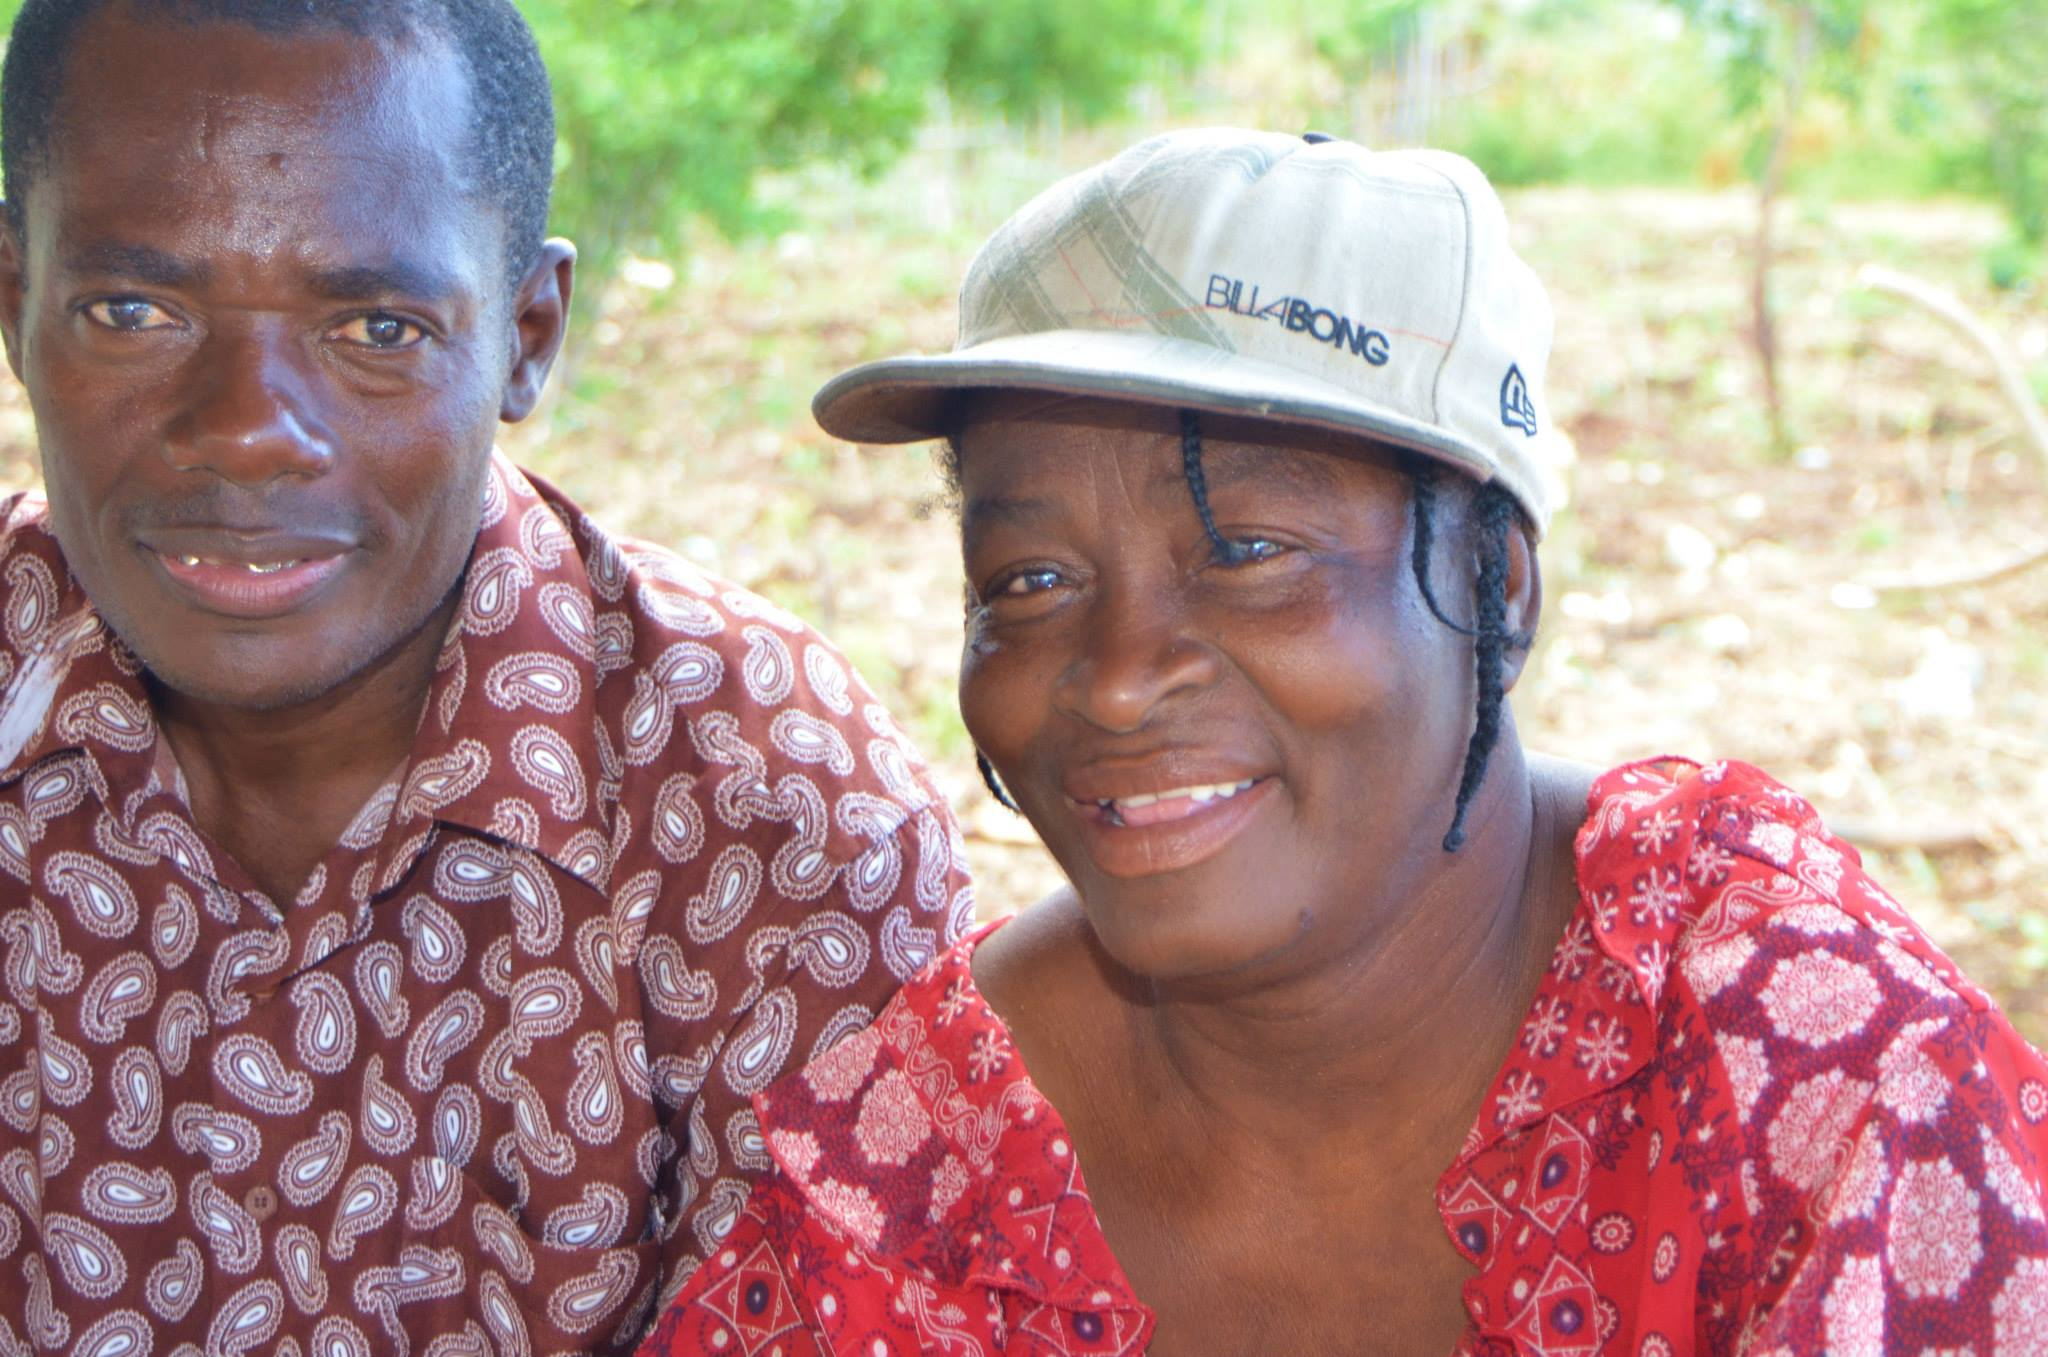 Pastor Honore and Momma Mona - Called by God to care for